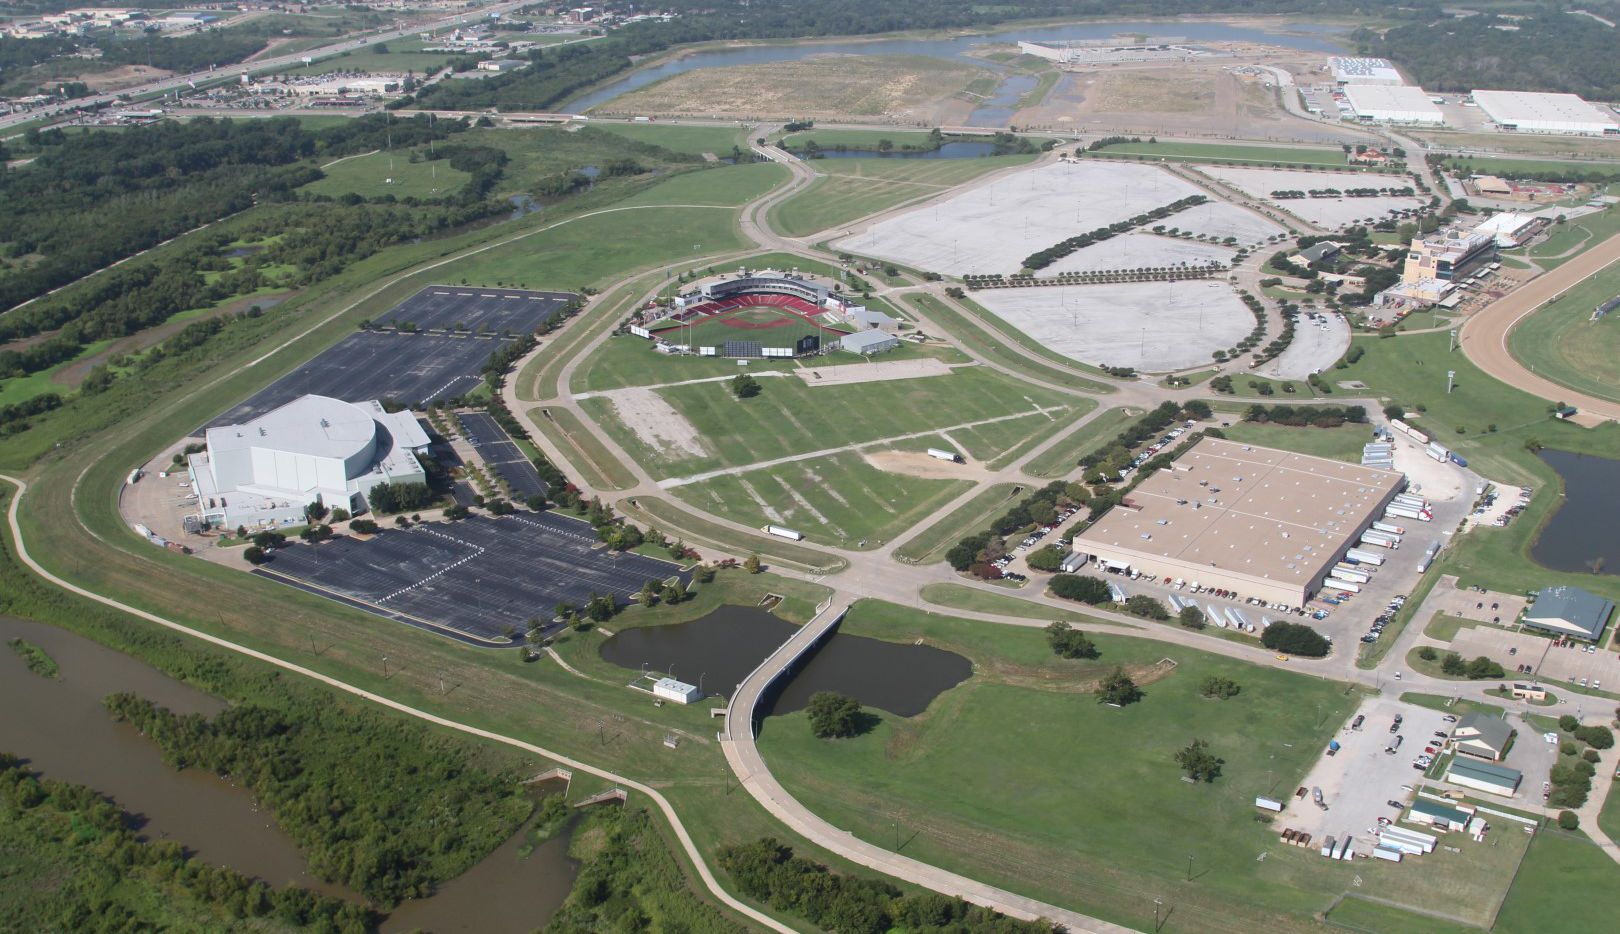 Lone Star Park and the to-be-renamed AirHogs Stadium seen from above. AirHogs Stadium is set to be redeveloped by architecture firm HKS to a central destination for cricket in the U.S.